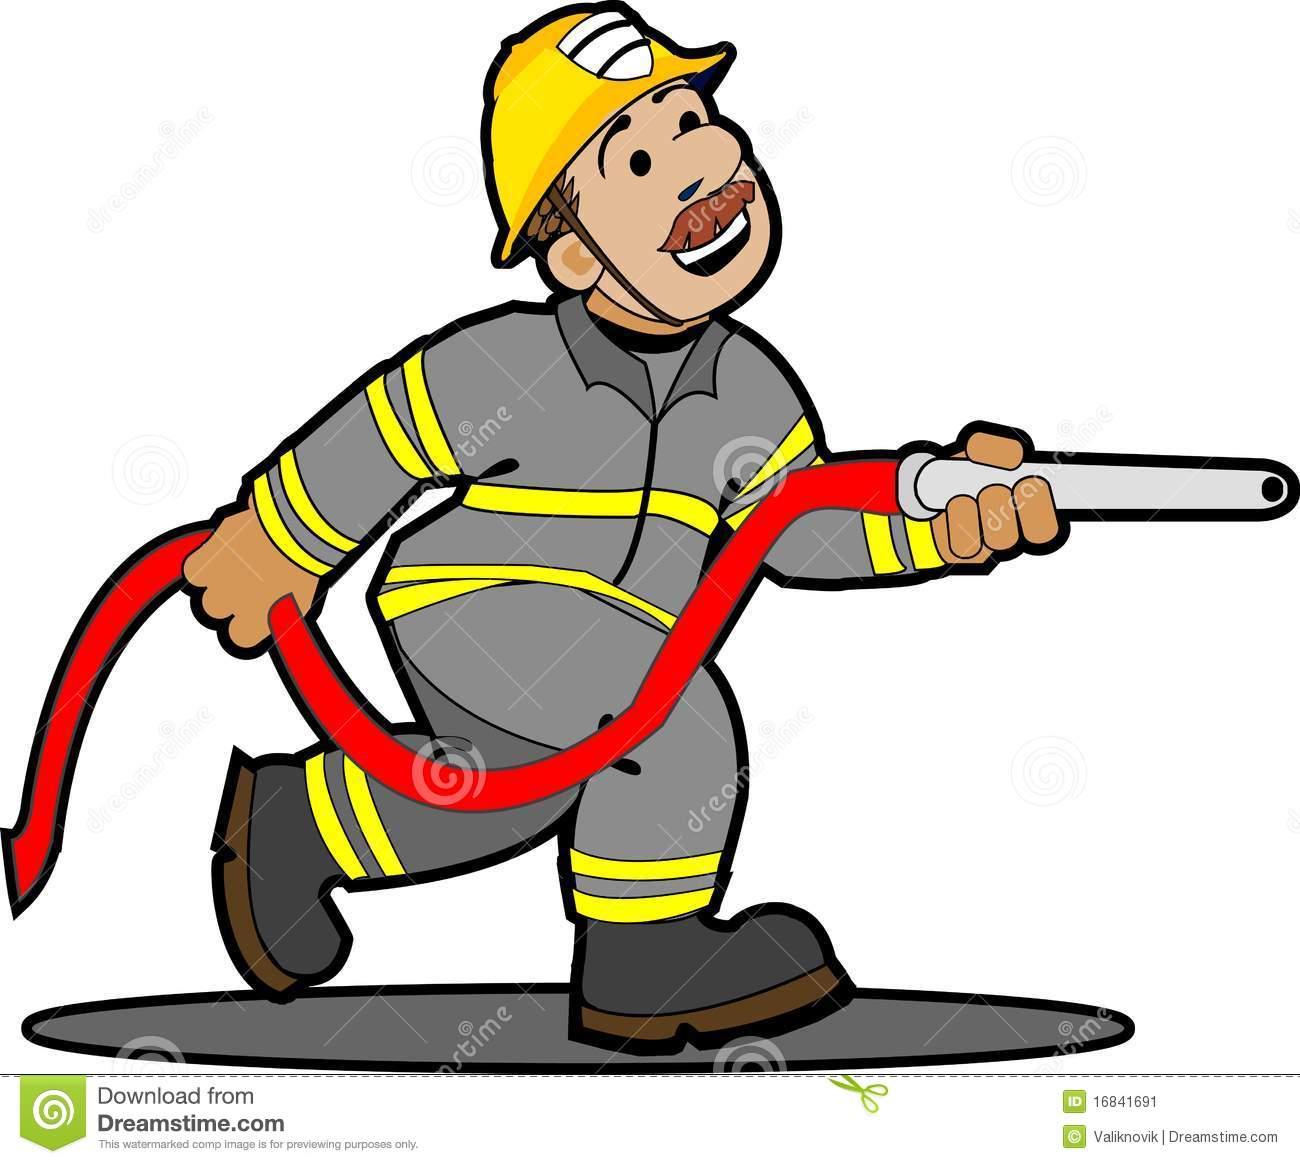 Cartoon Fireman Clipart.